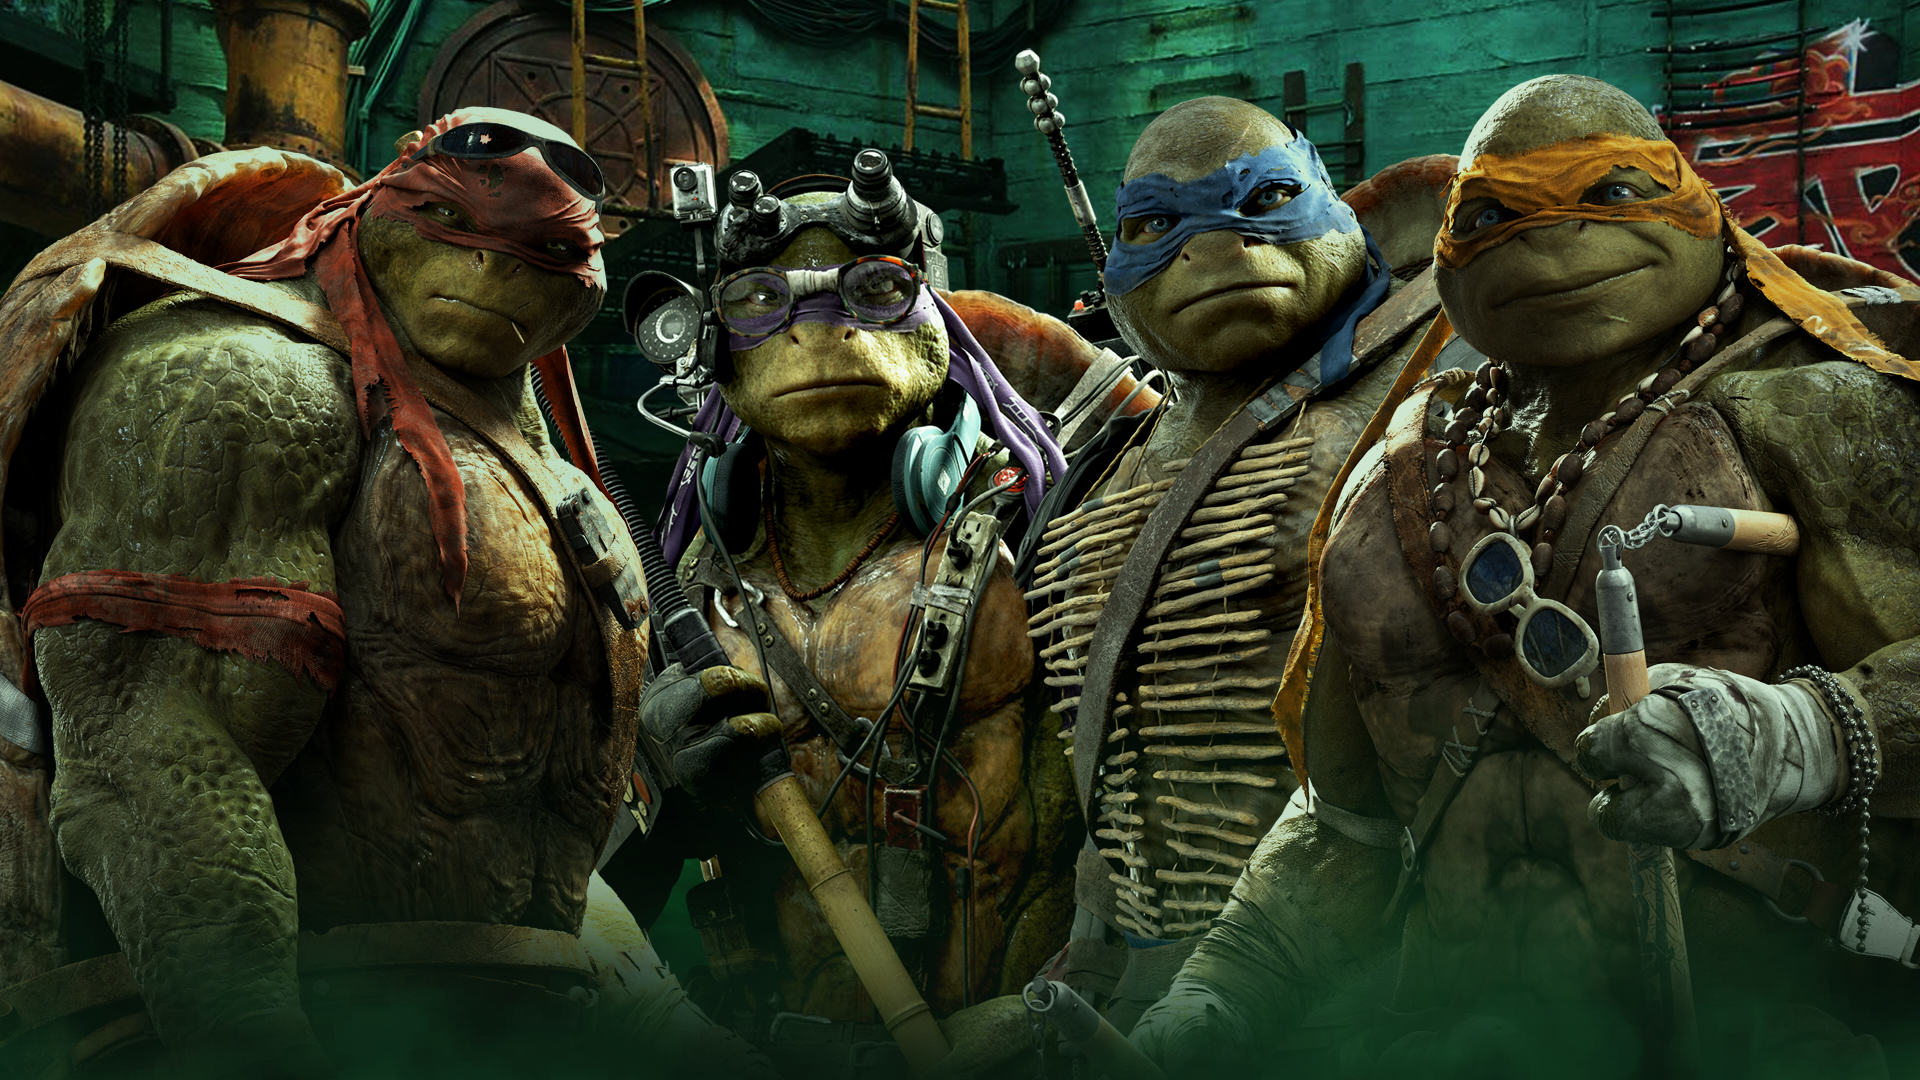 Heres Why A Guy Smuggled 51 Turtles In His Trousers ninja turtles 135365